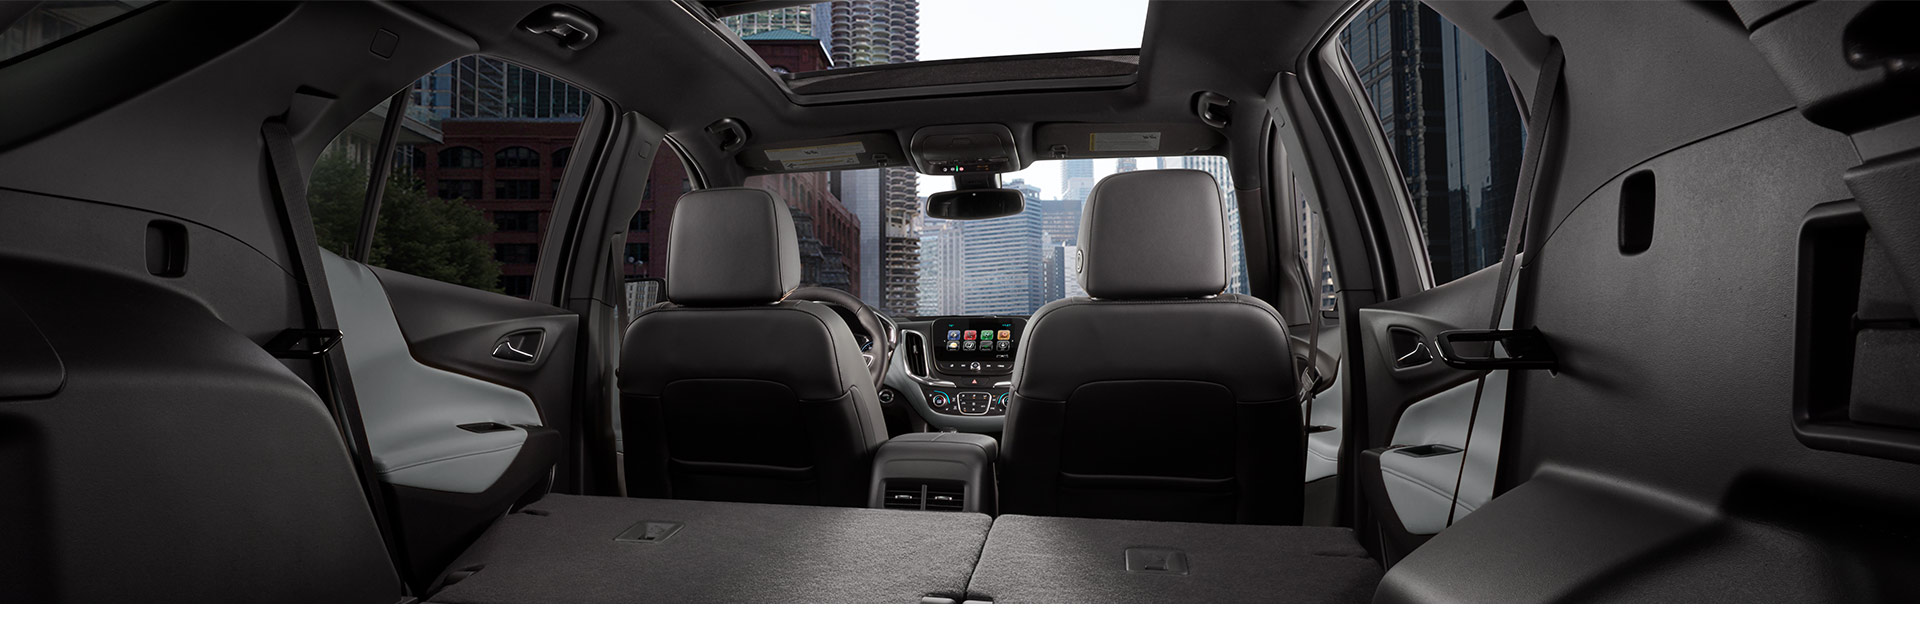 chevrolet-equinox-interior